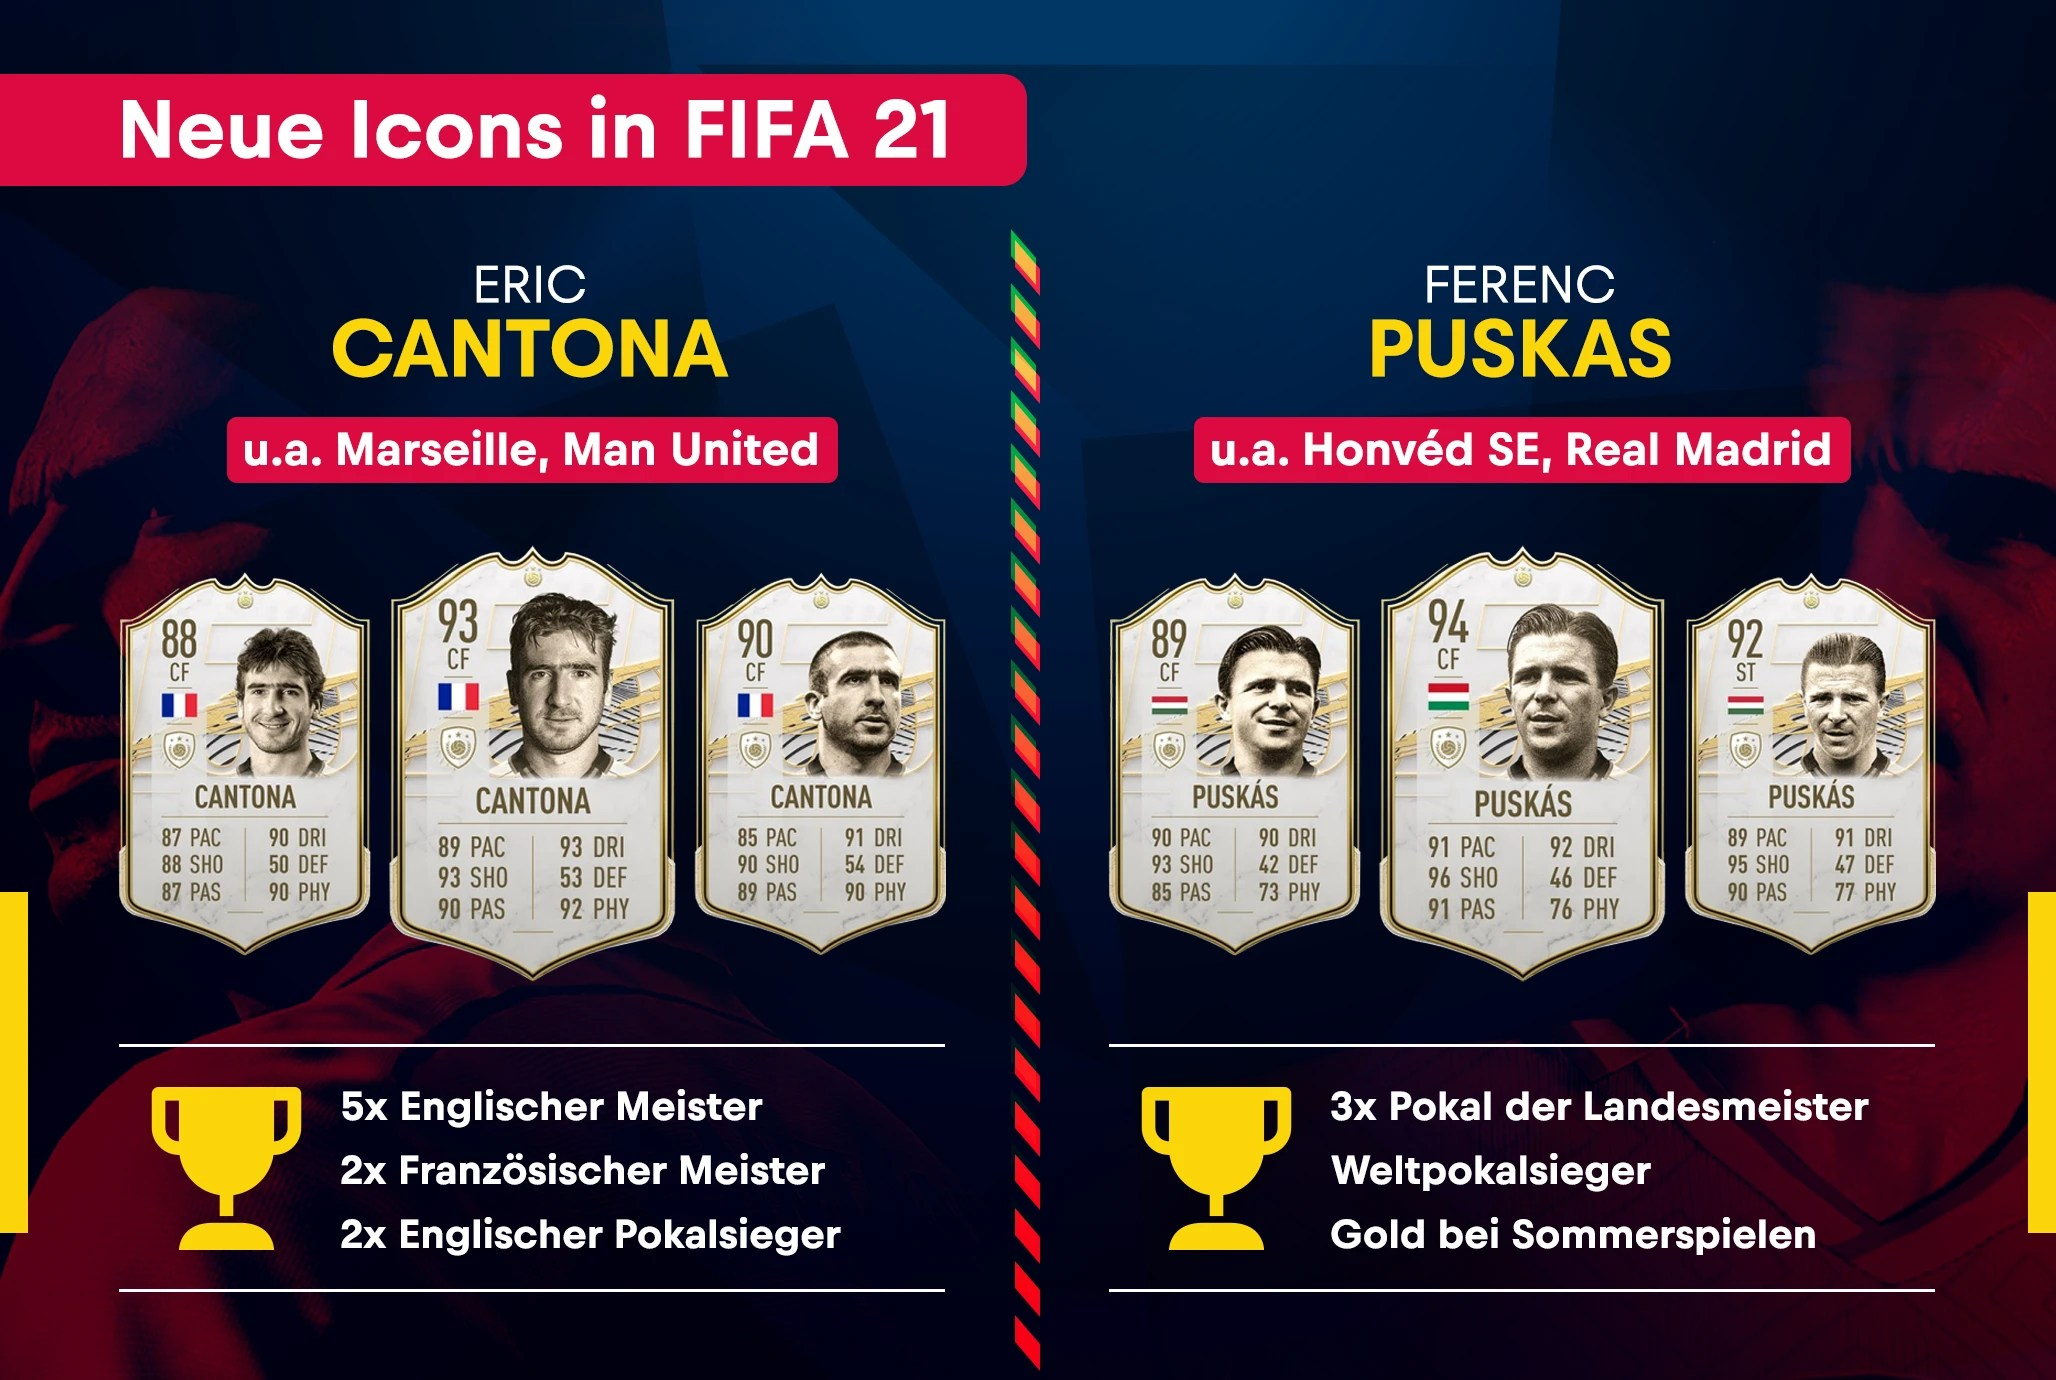 In fifa 21, cantona got a rating of 90 and a potential of 90. Fifa 21 Ultimate Team Icons Das Sind Die Neuen Ikonen